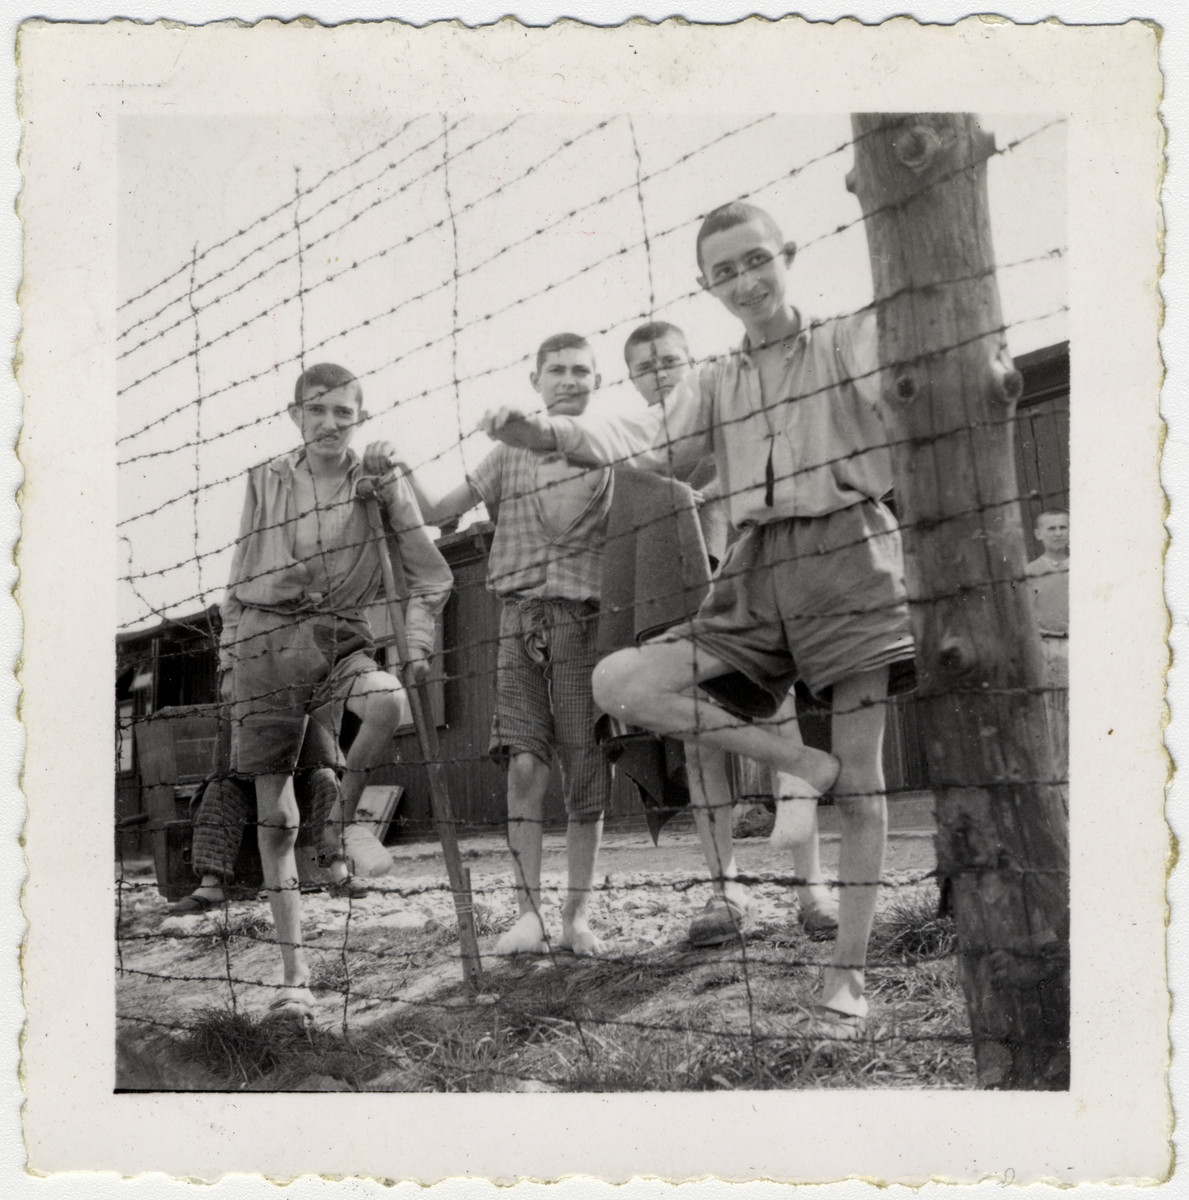 Four young Buchenwald survivors stand next to a barbed wire fence.